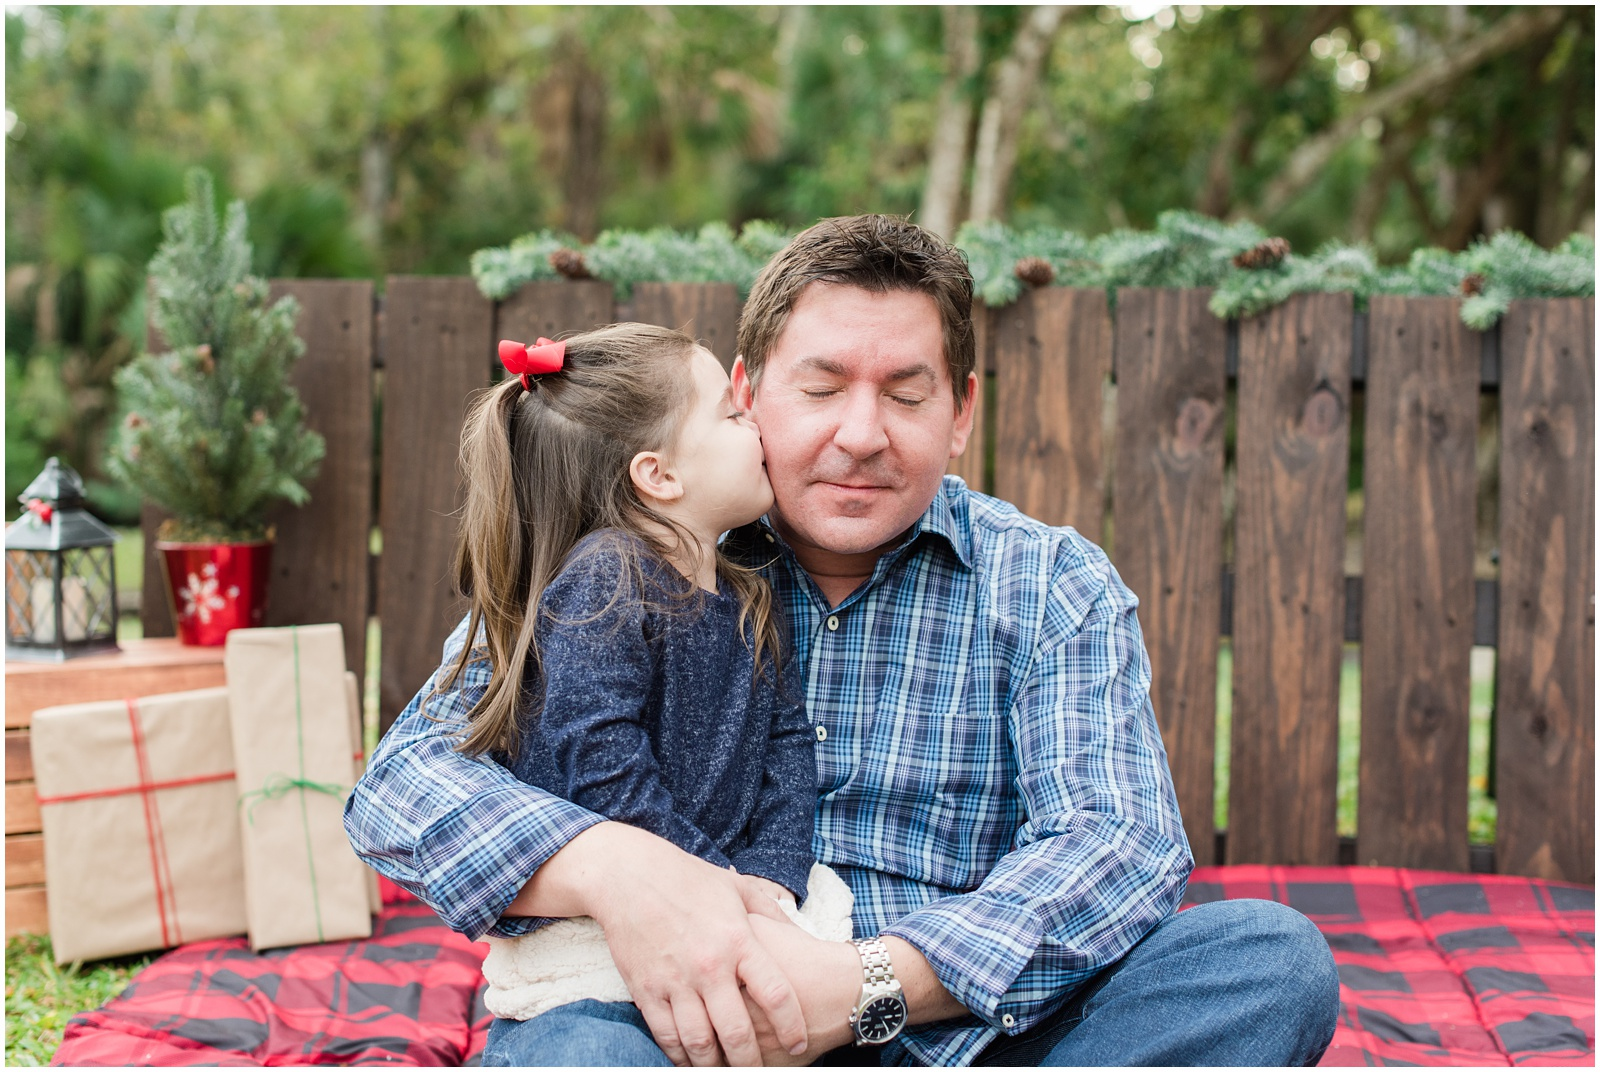 Christmas_Mini Sessions_Holidays_Howell Park_Jacksonville_Florida_11.jpg